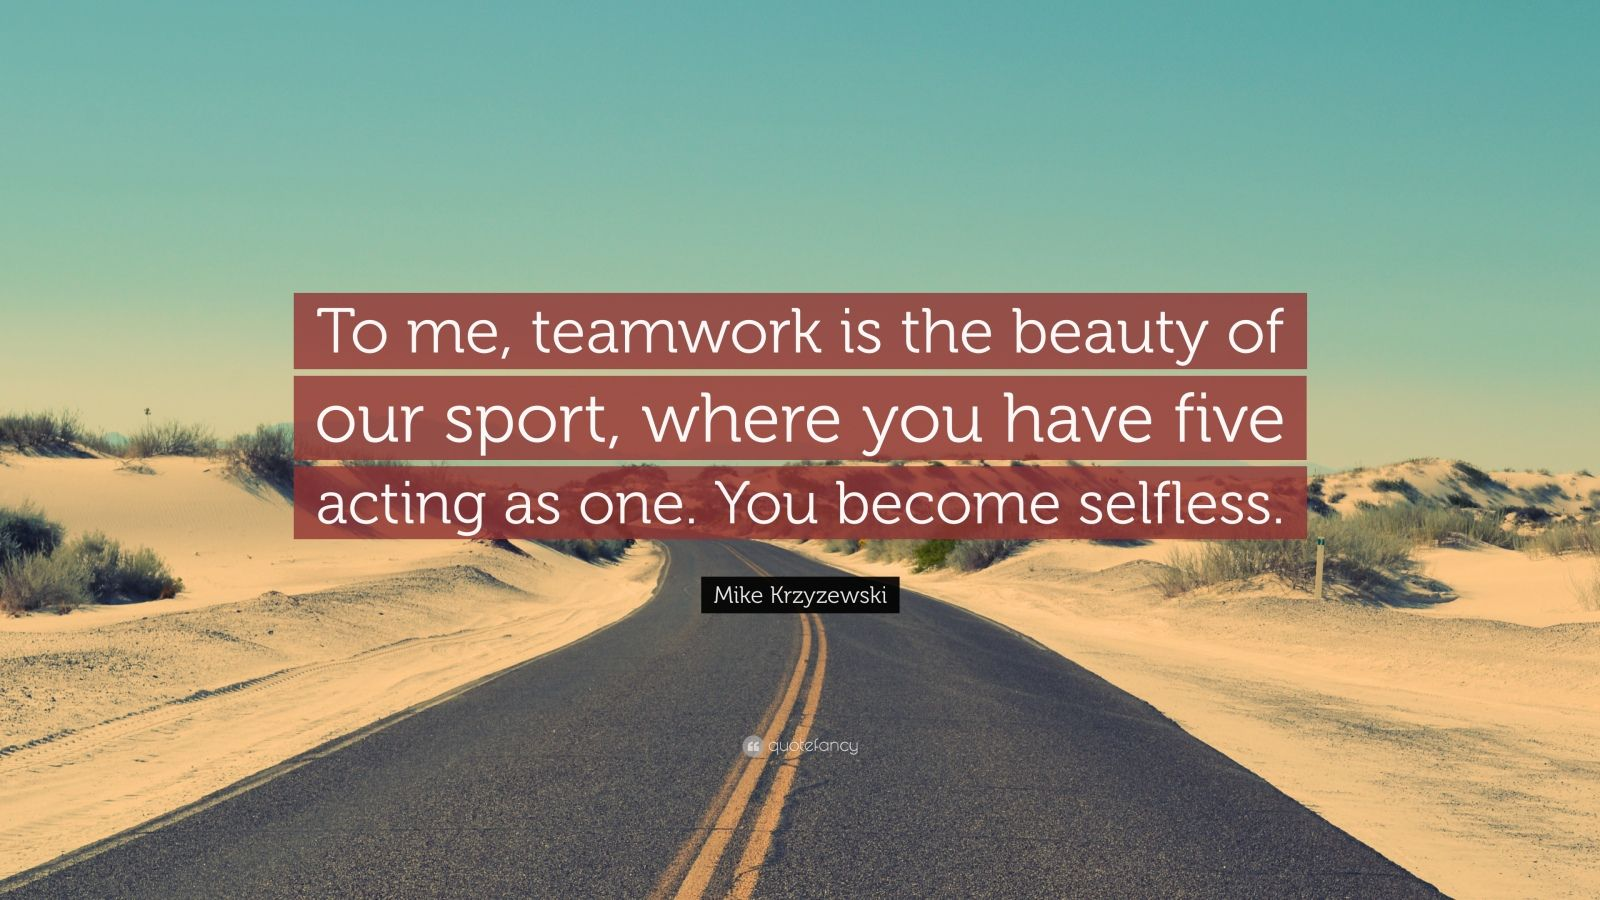 """Mike Krzyzewski Quote: """"To me, teamwork is the beauty of our sport, where you have five acting as one. You become selfless."""""""